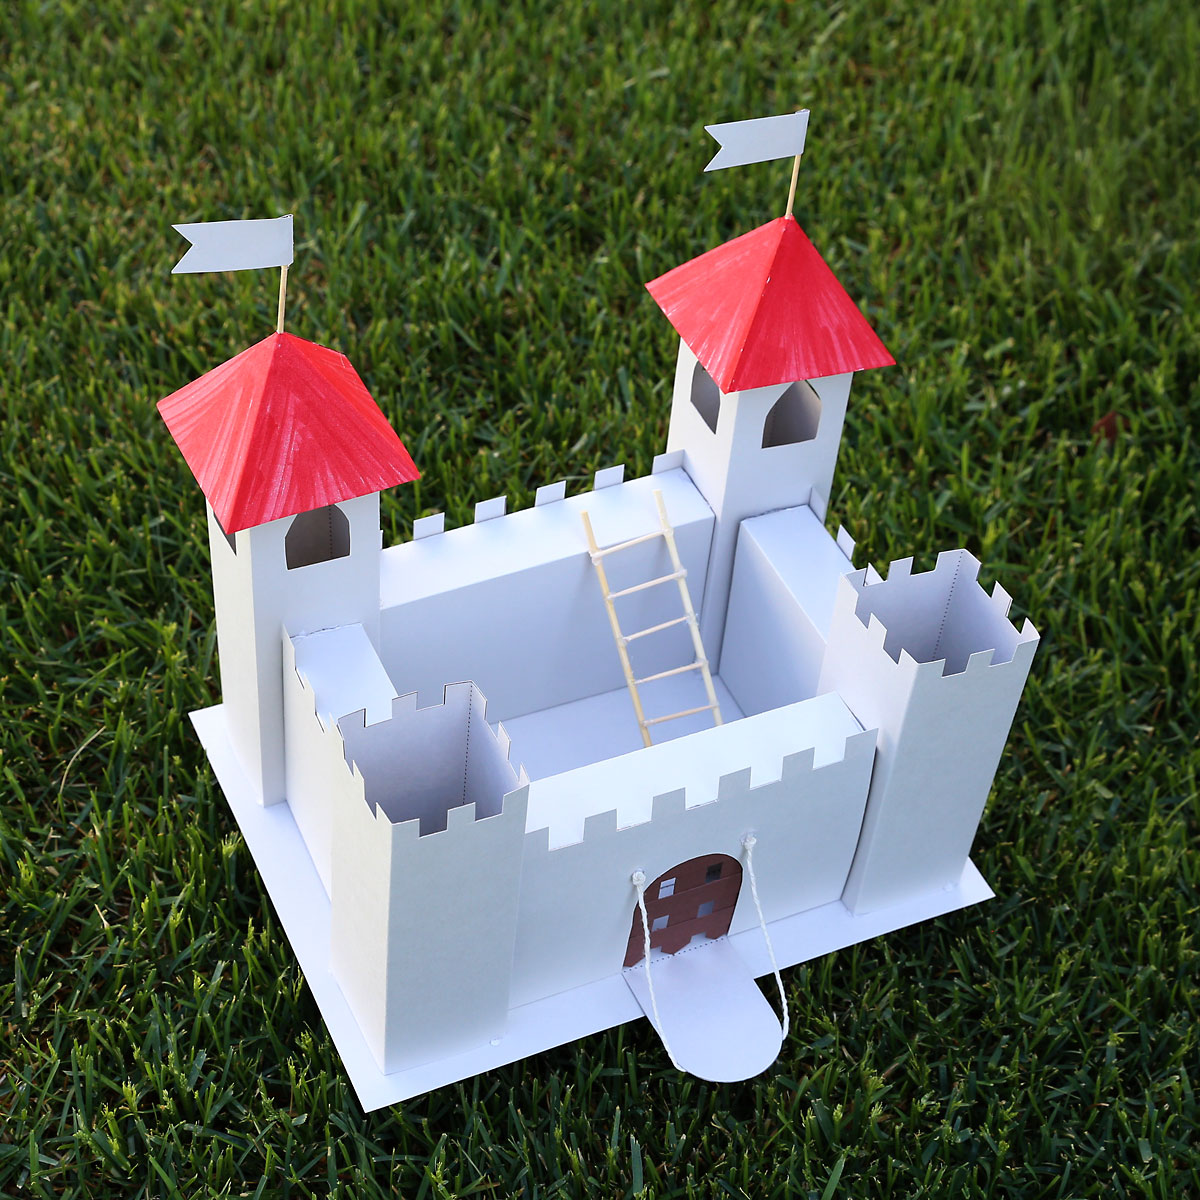 Paper castle sitting on the grass